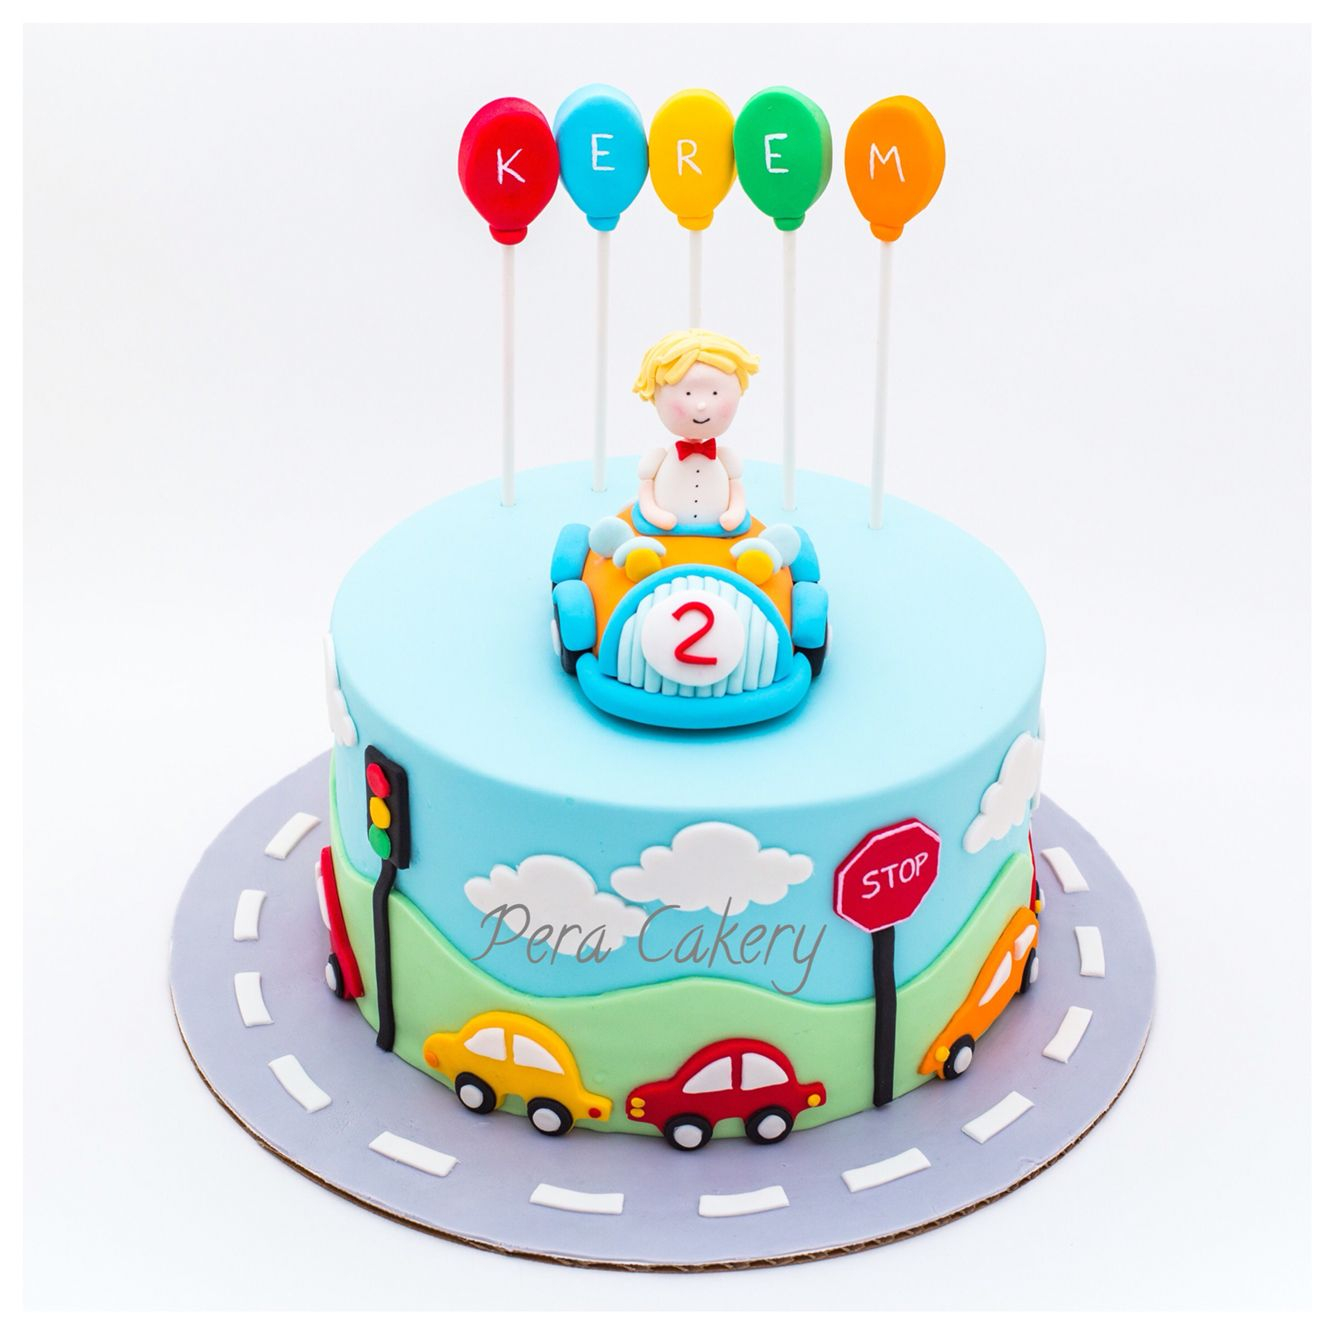 Birthday Cake Boy Car For A 2 Year Old Pera Cakery Cakes Pinterest